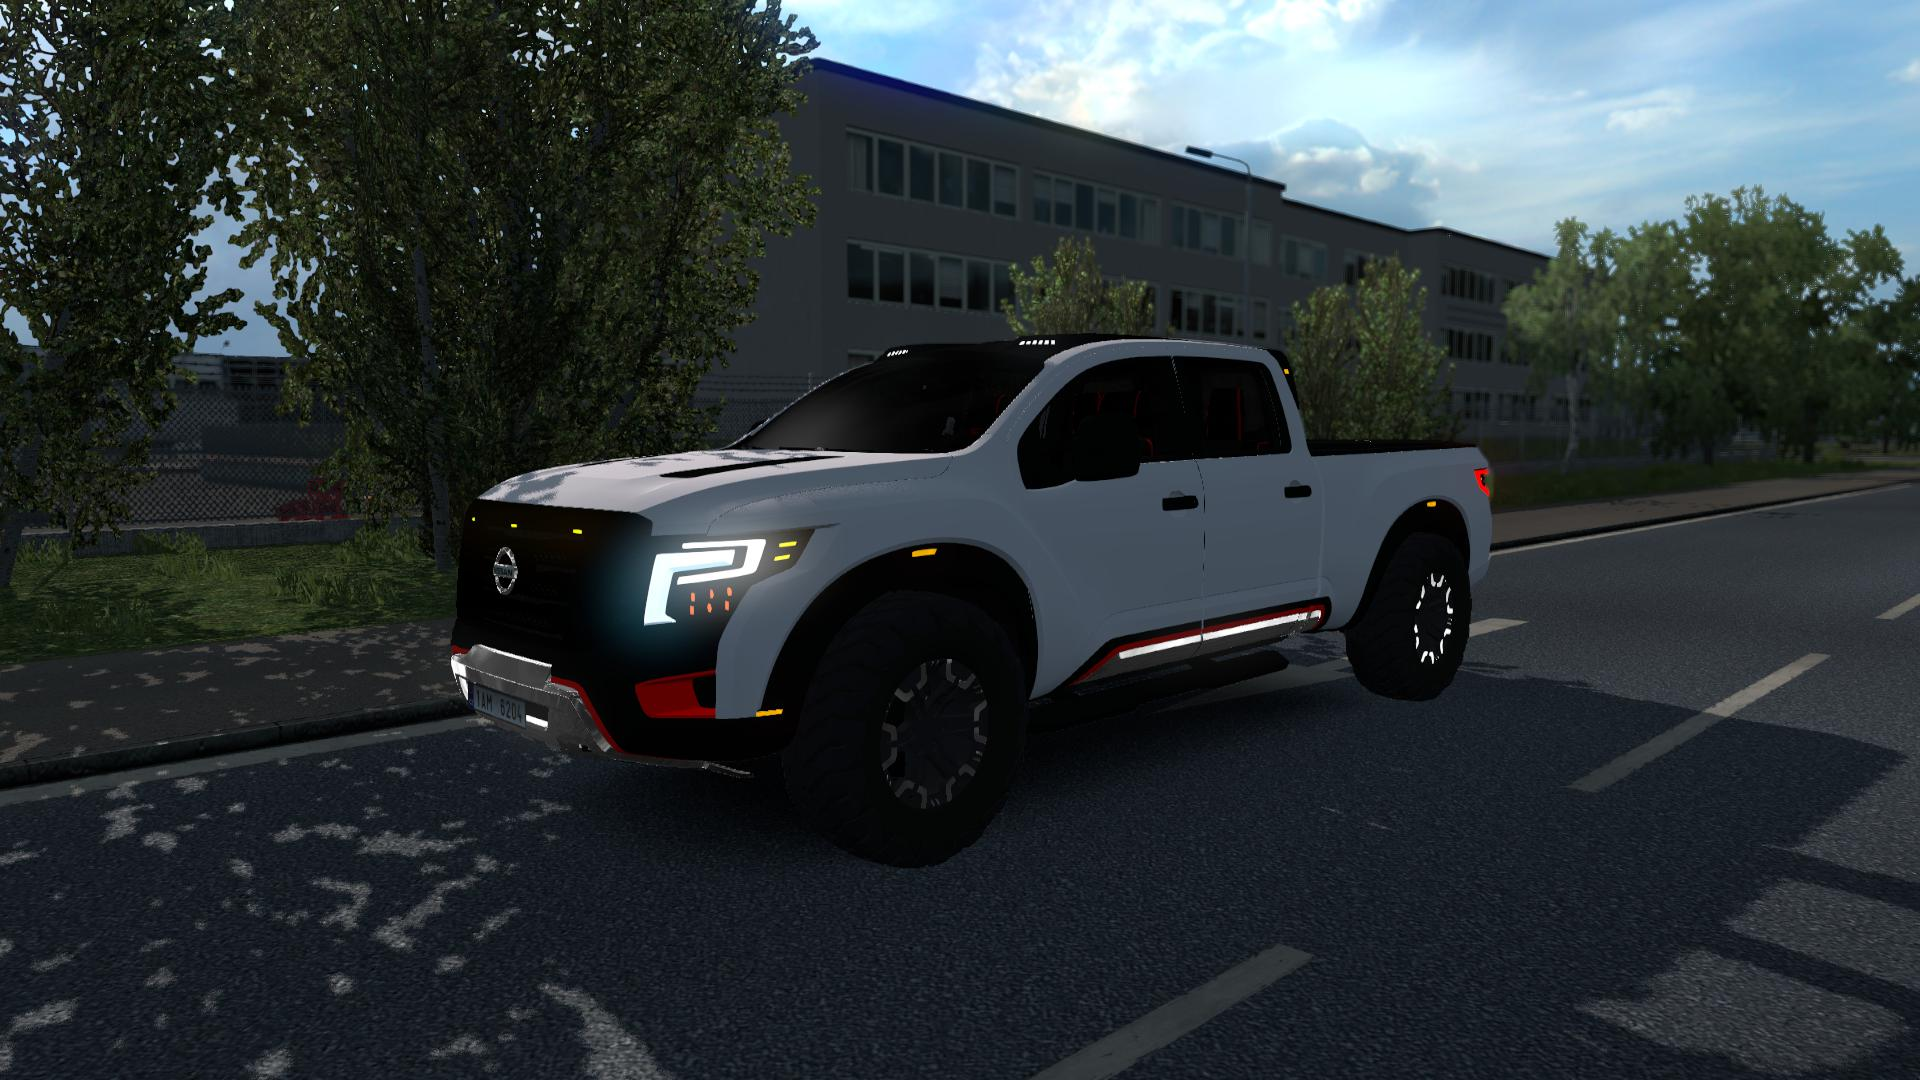 Ets2 Nissan Titan Warrior 1 36 X Euro Truck Simulator 2 Mods Club